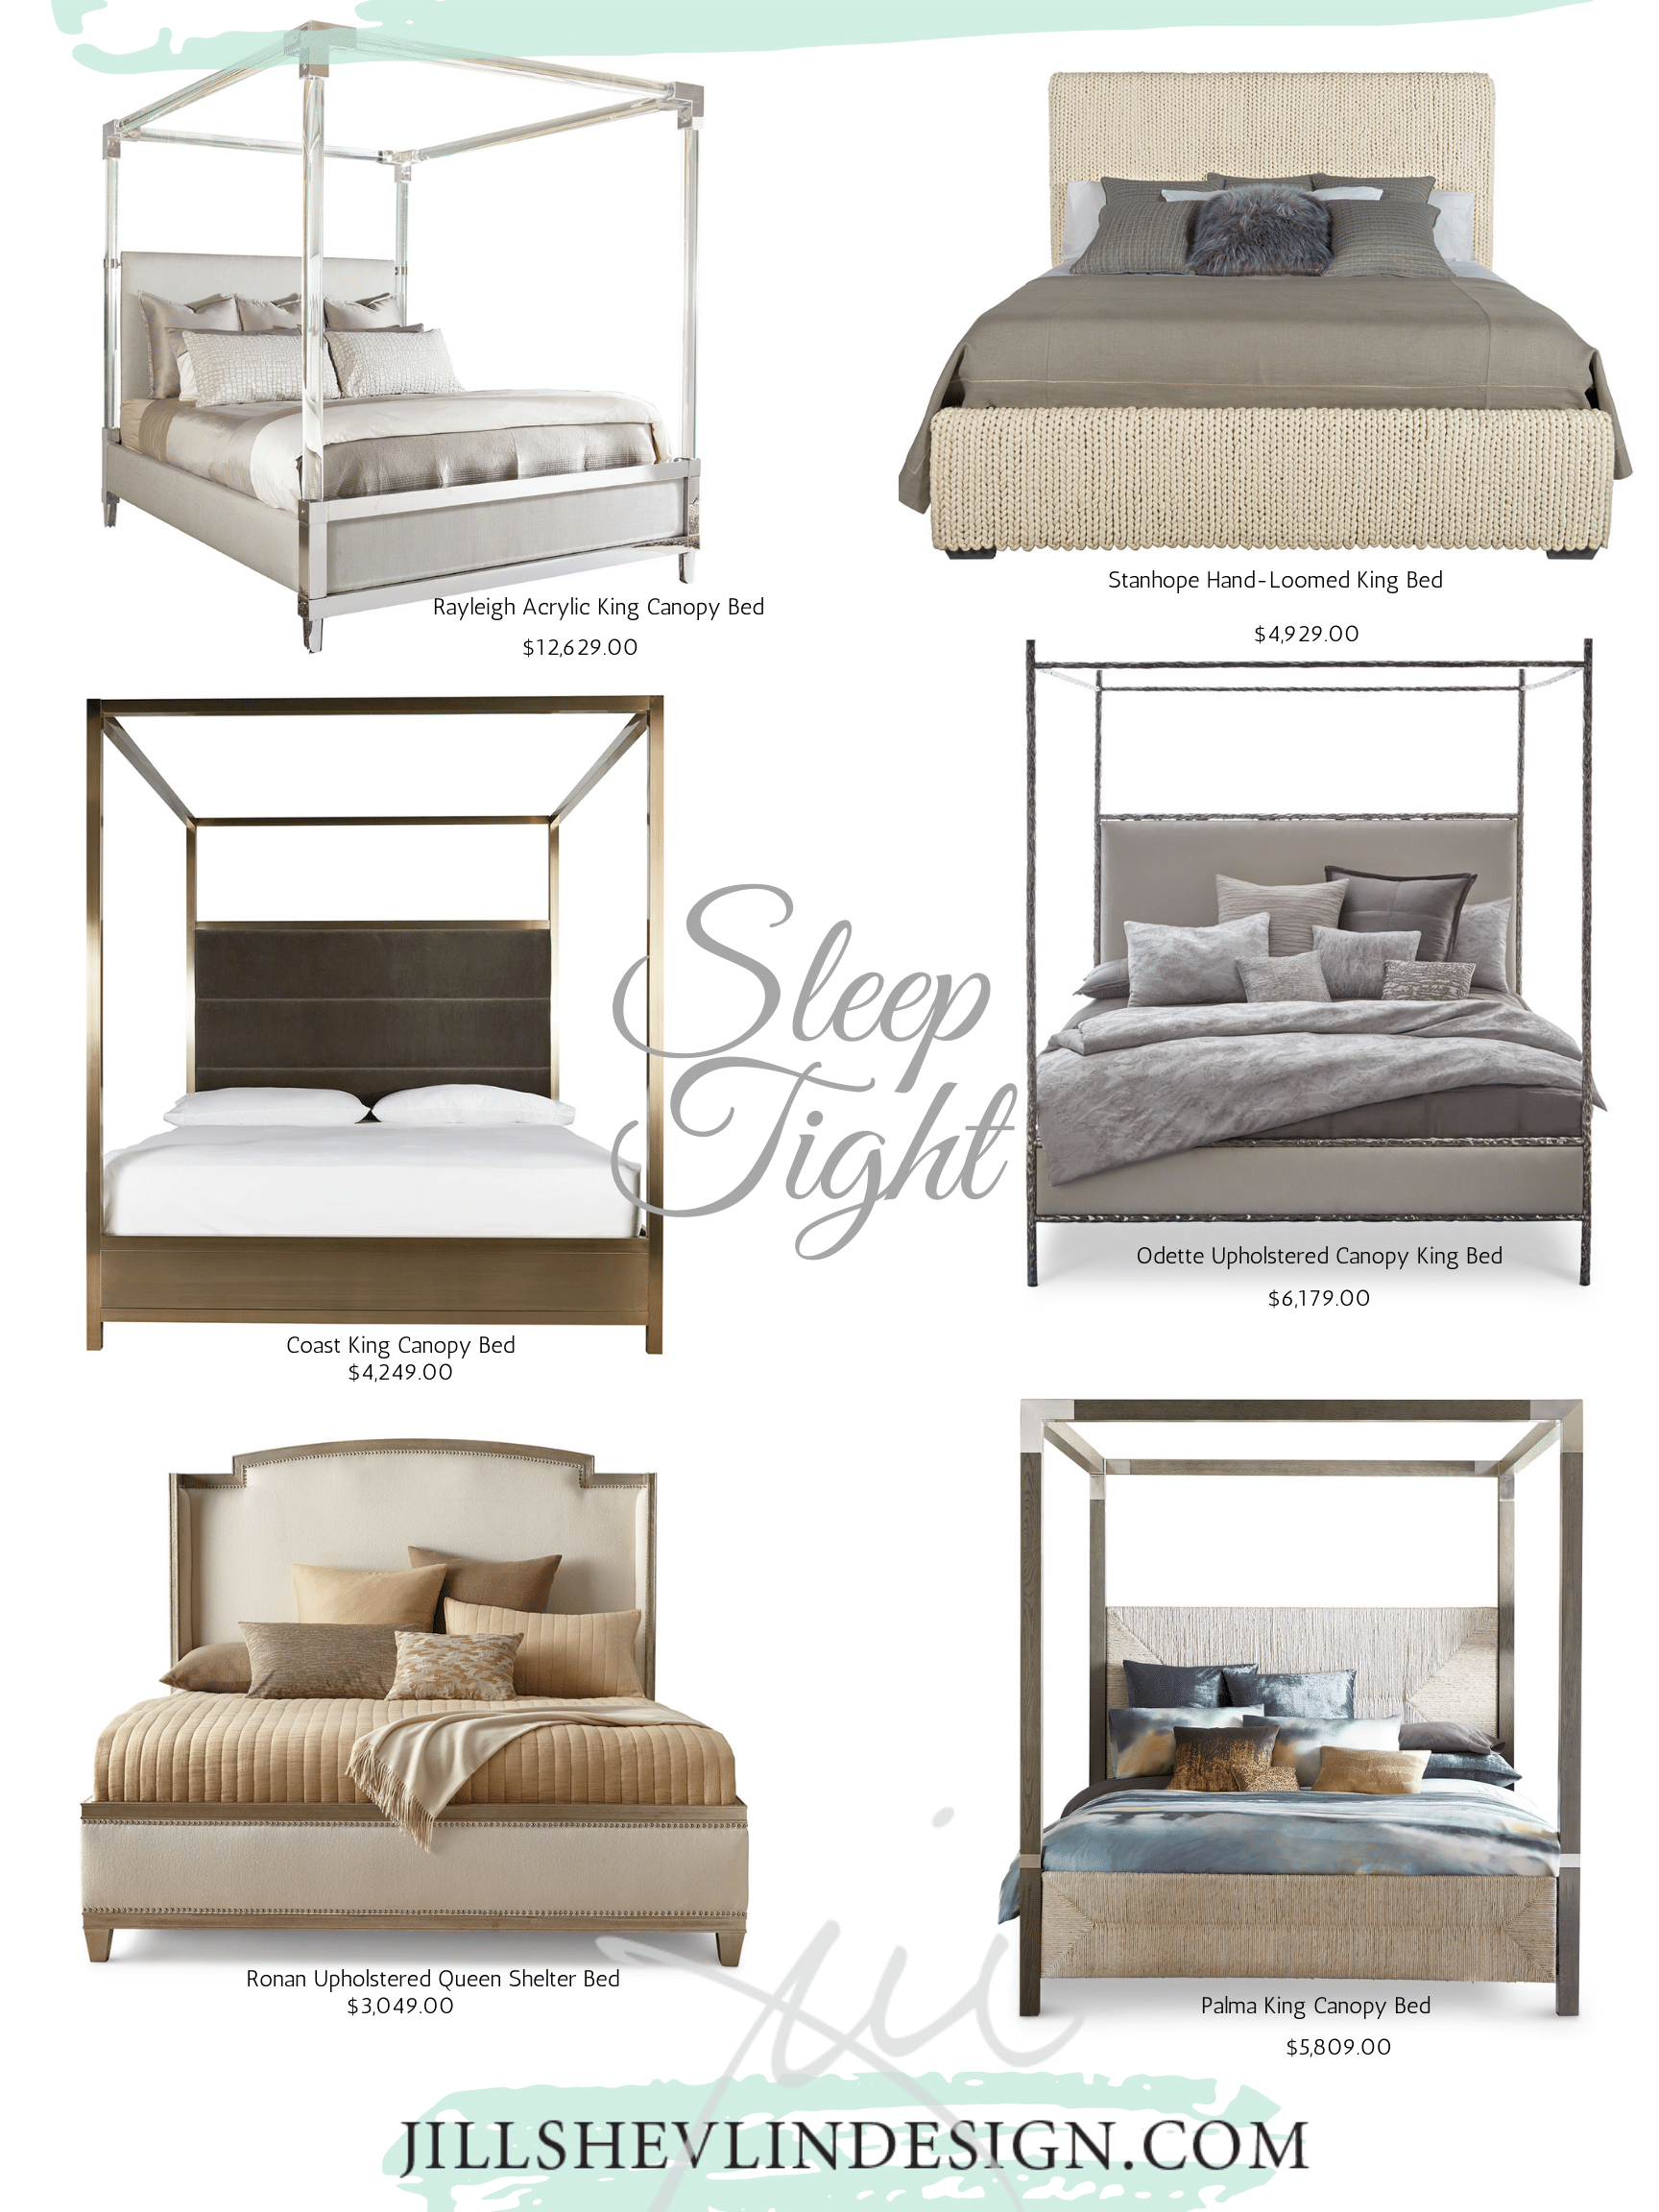 Sleep Tight Beds Shop Jill Shevlin Design Vero Beach Interior Designer